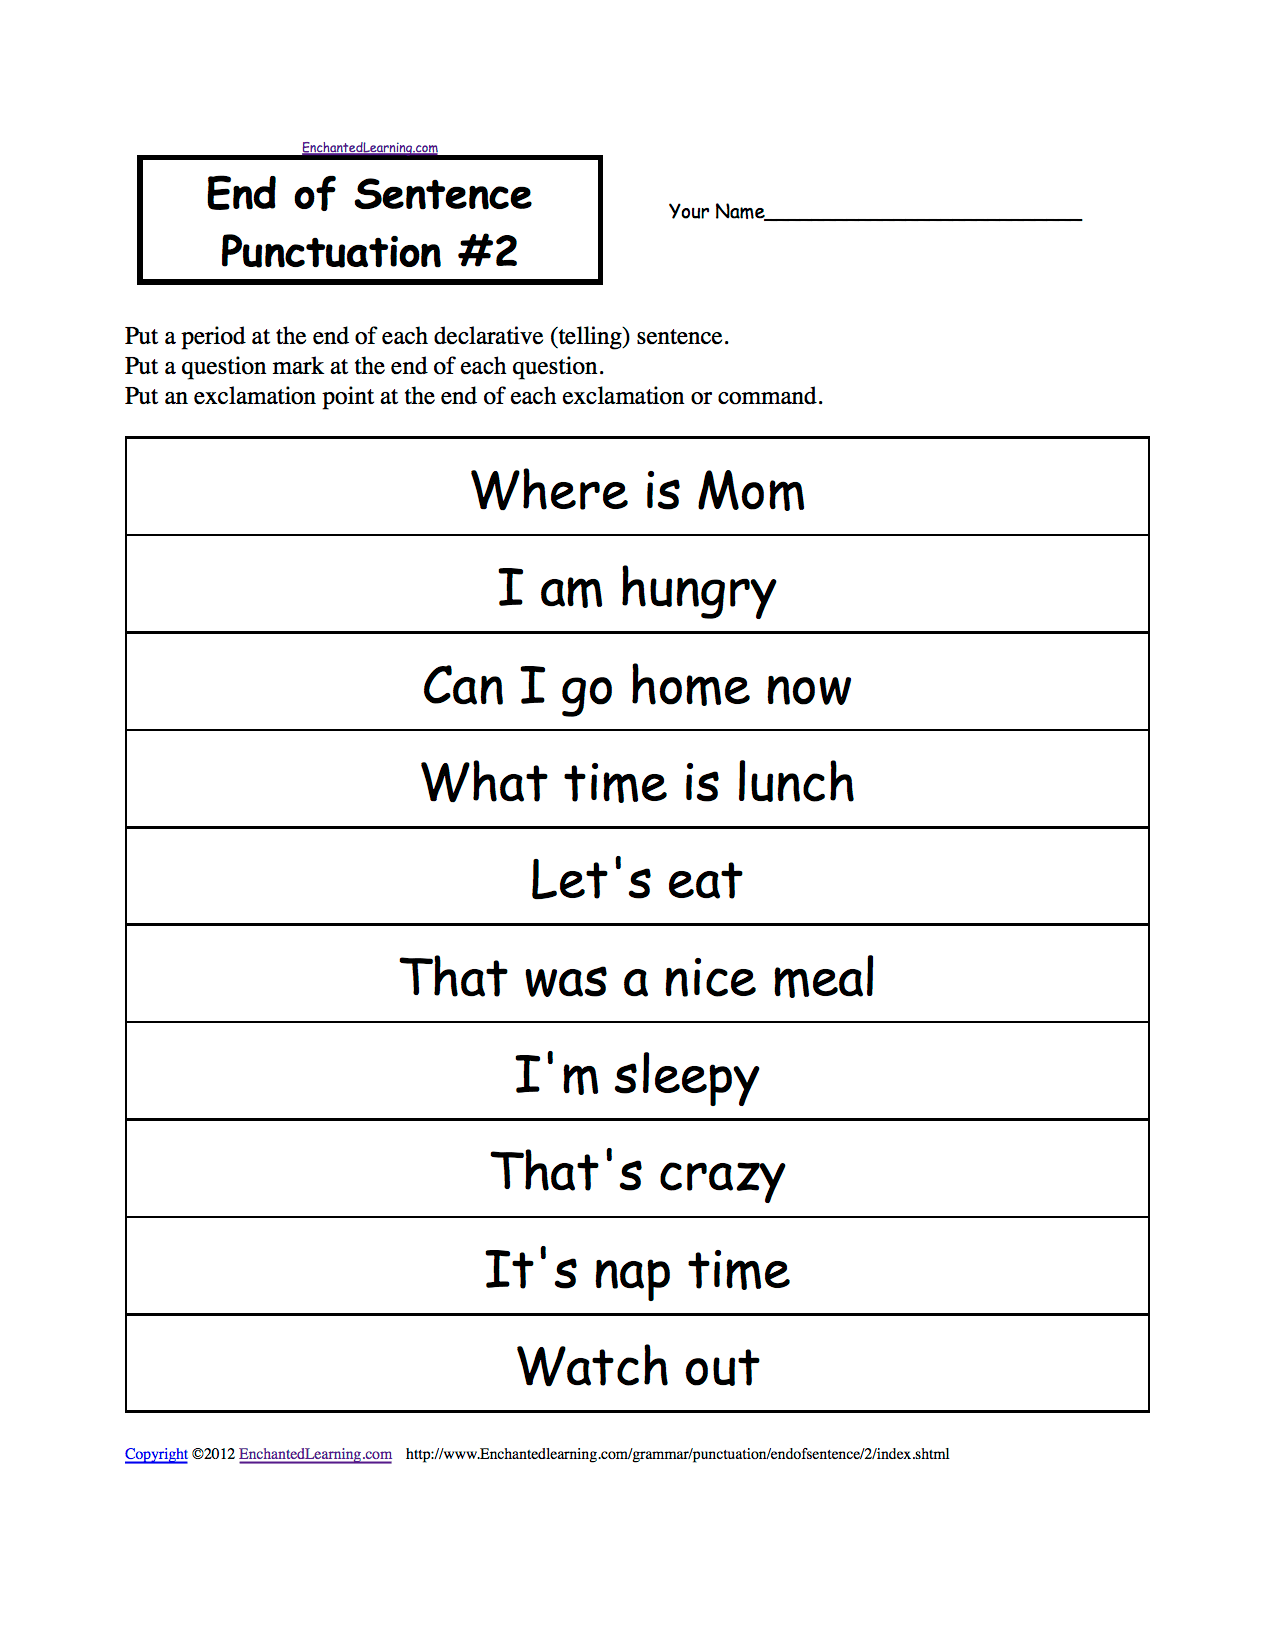 Worksheet On Punctuation For Grade 4